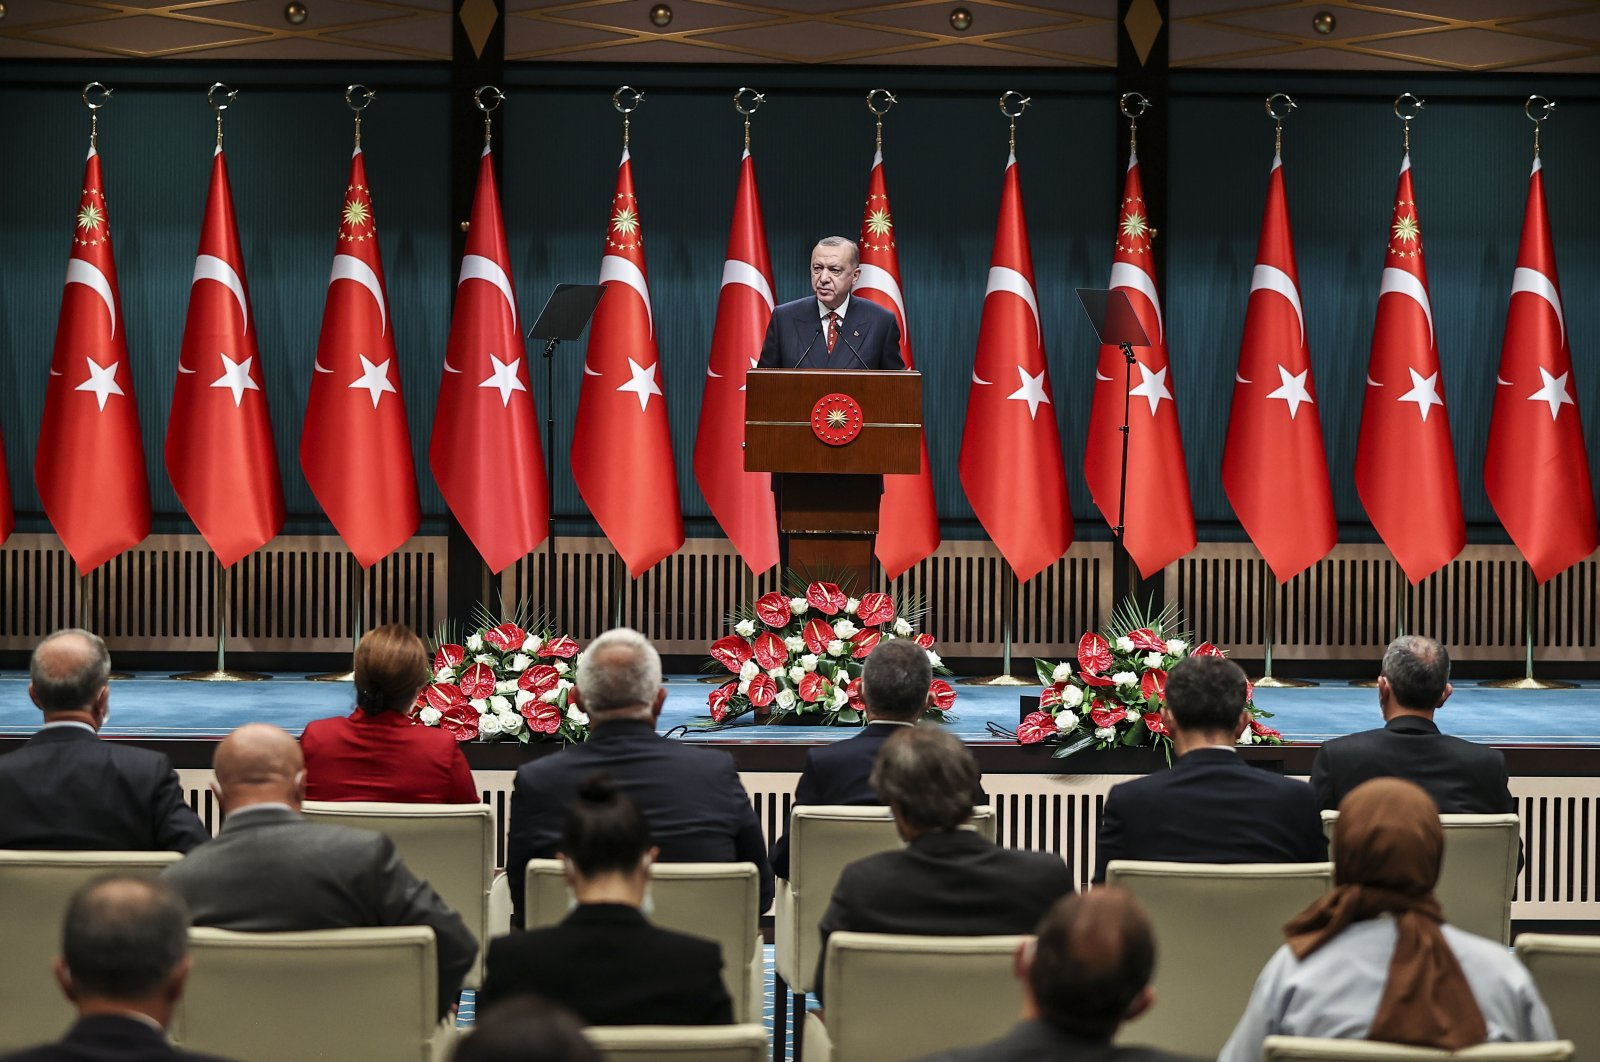 Turkish President Recep Tayyip Erdoğan speaking after the Cabinet meeting at the Presidential Complex in Ankara, Turkey, July 12, 2021. (AA Photo)